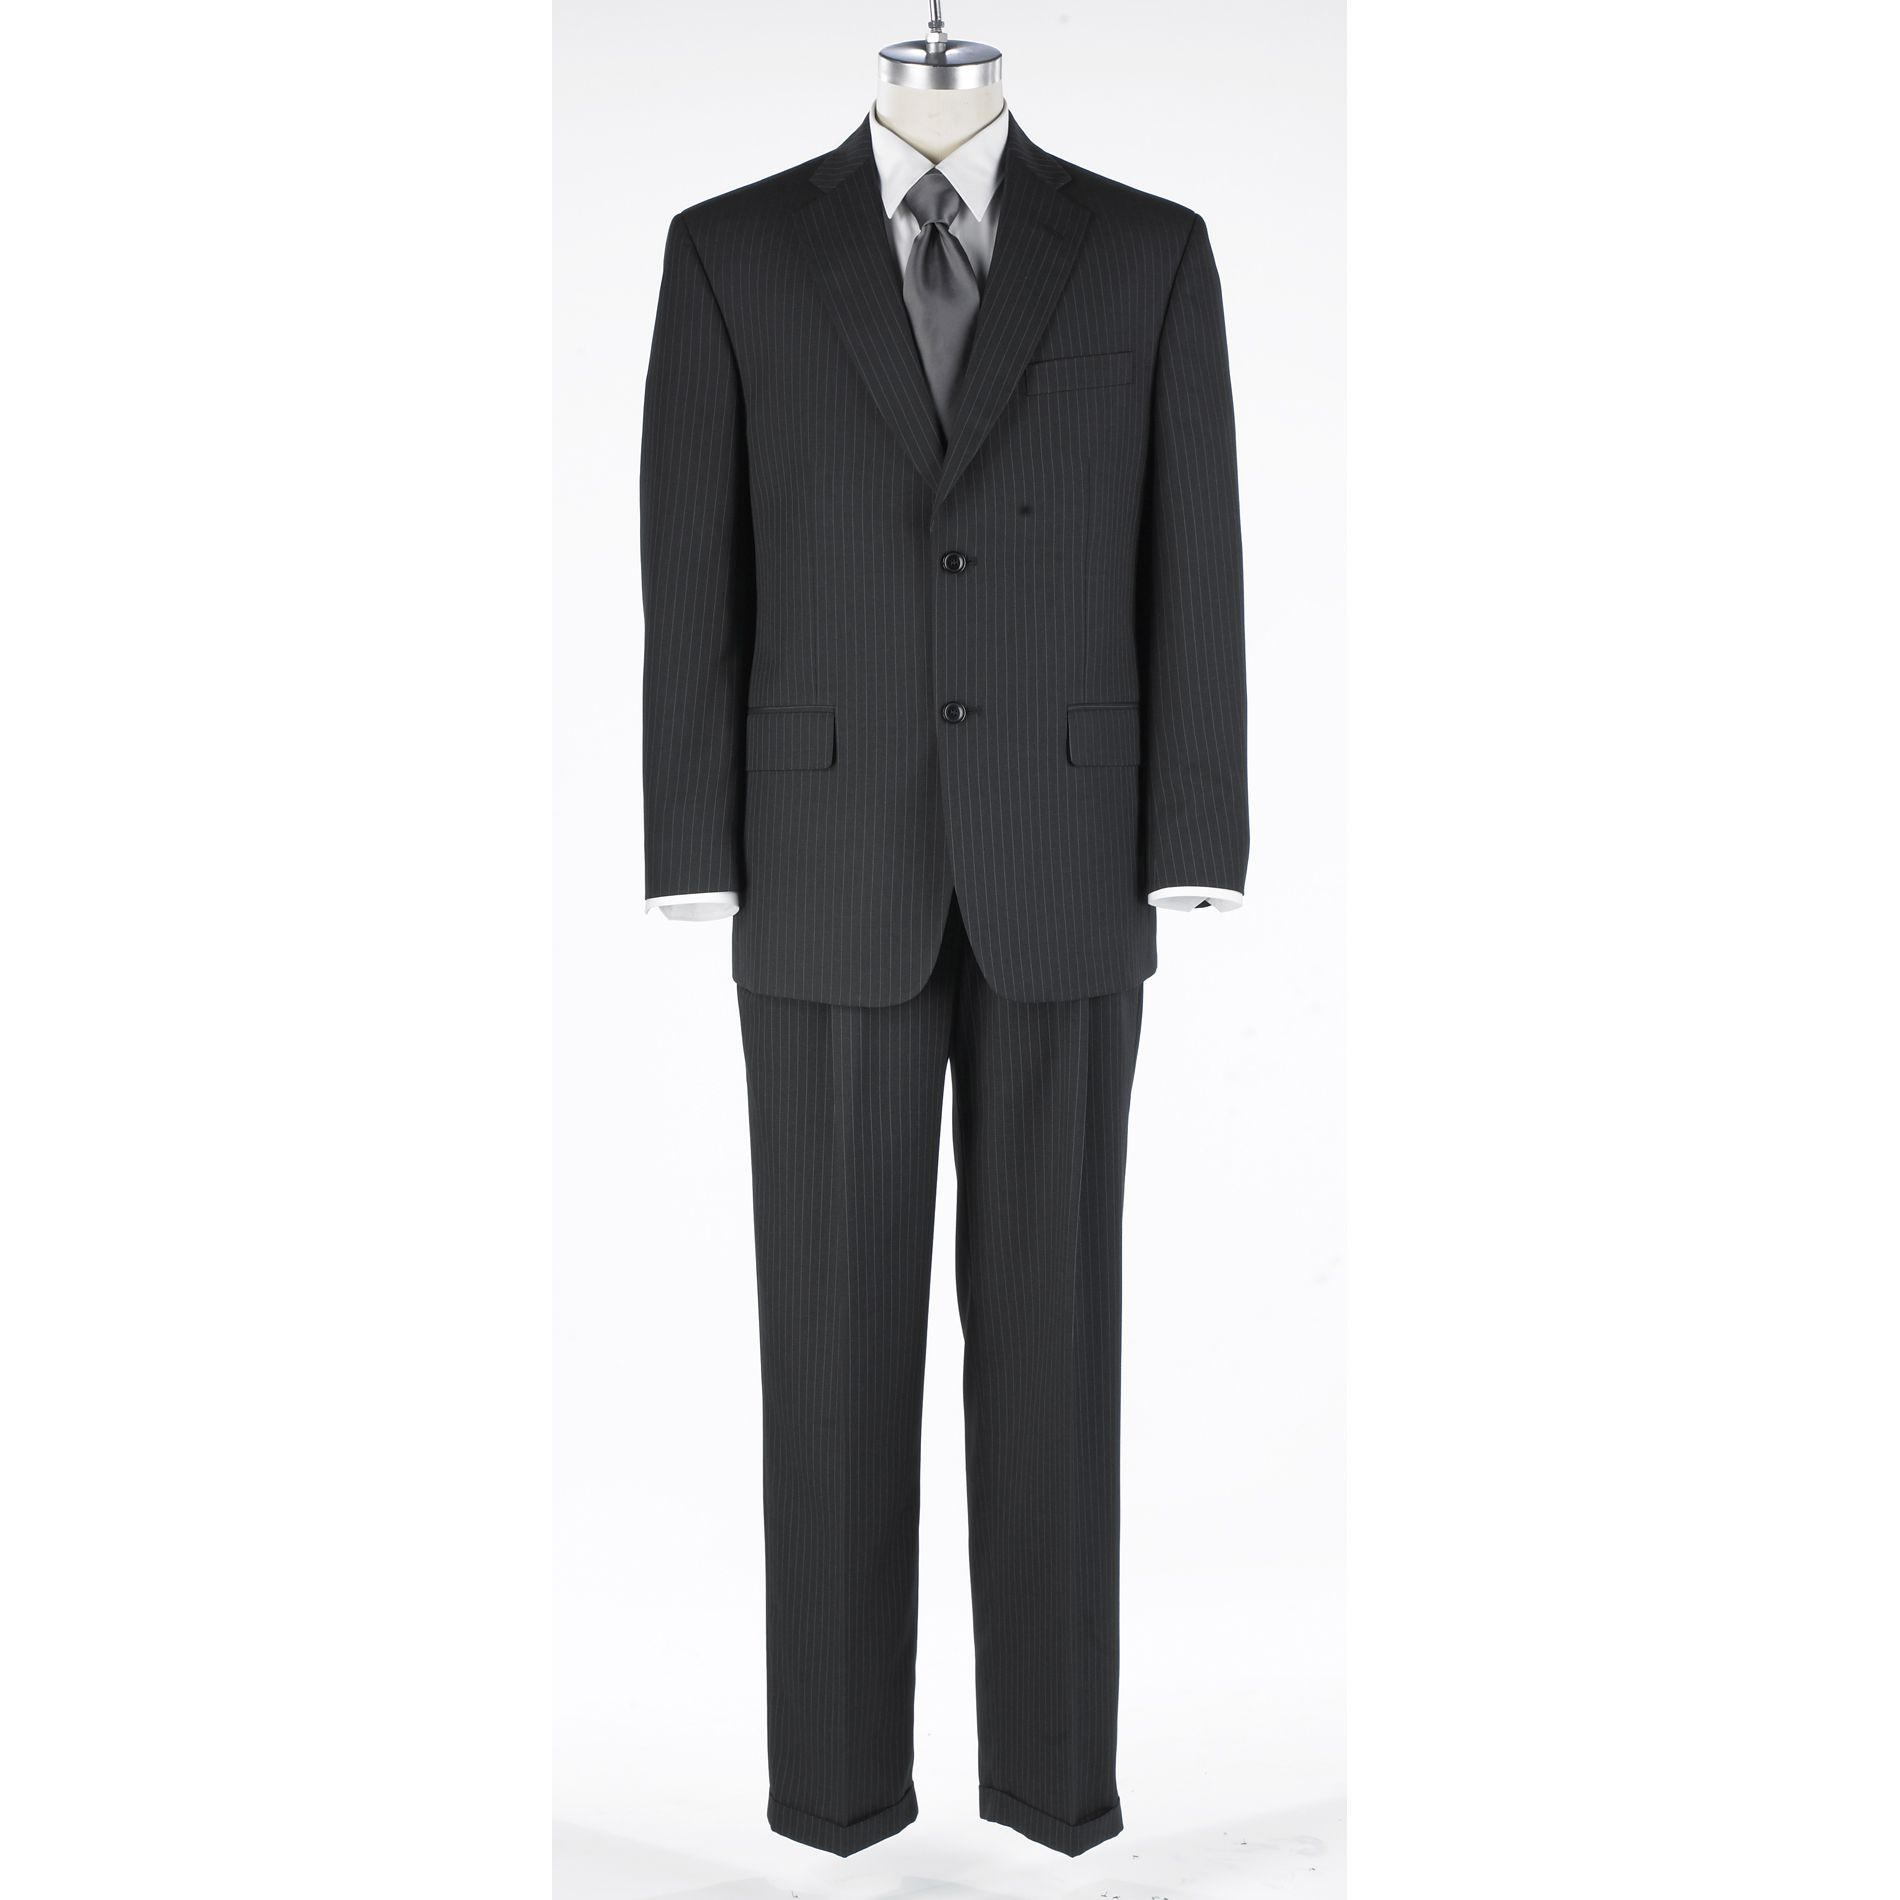 Haggar Charcoal Stripe Suit Separate Collection at Sears.com